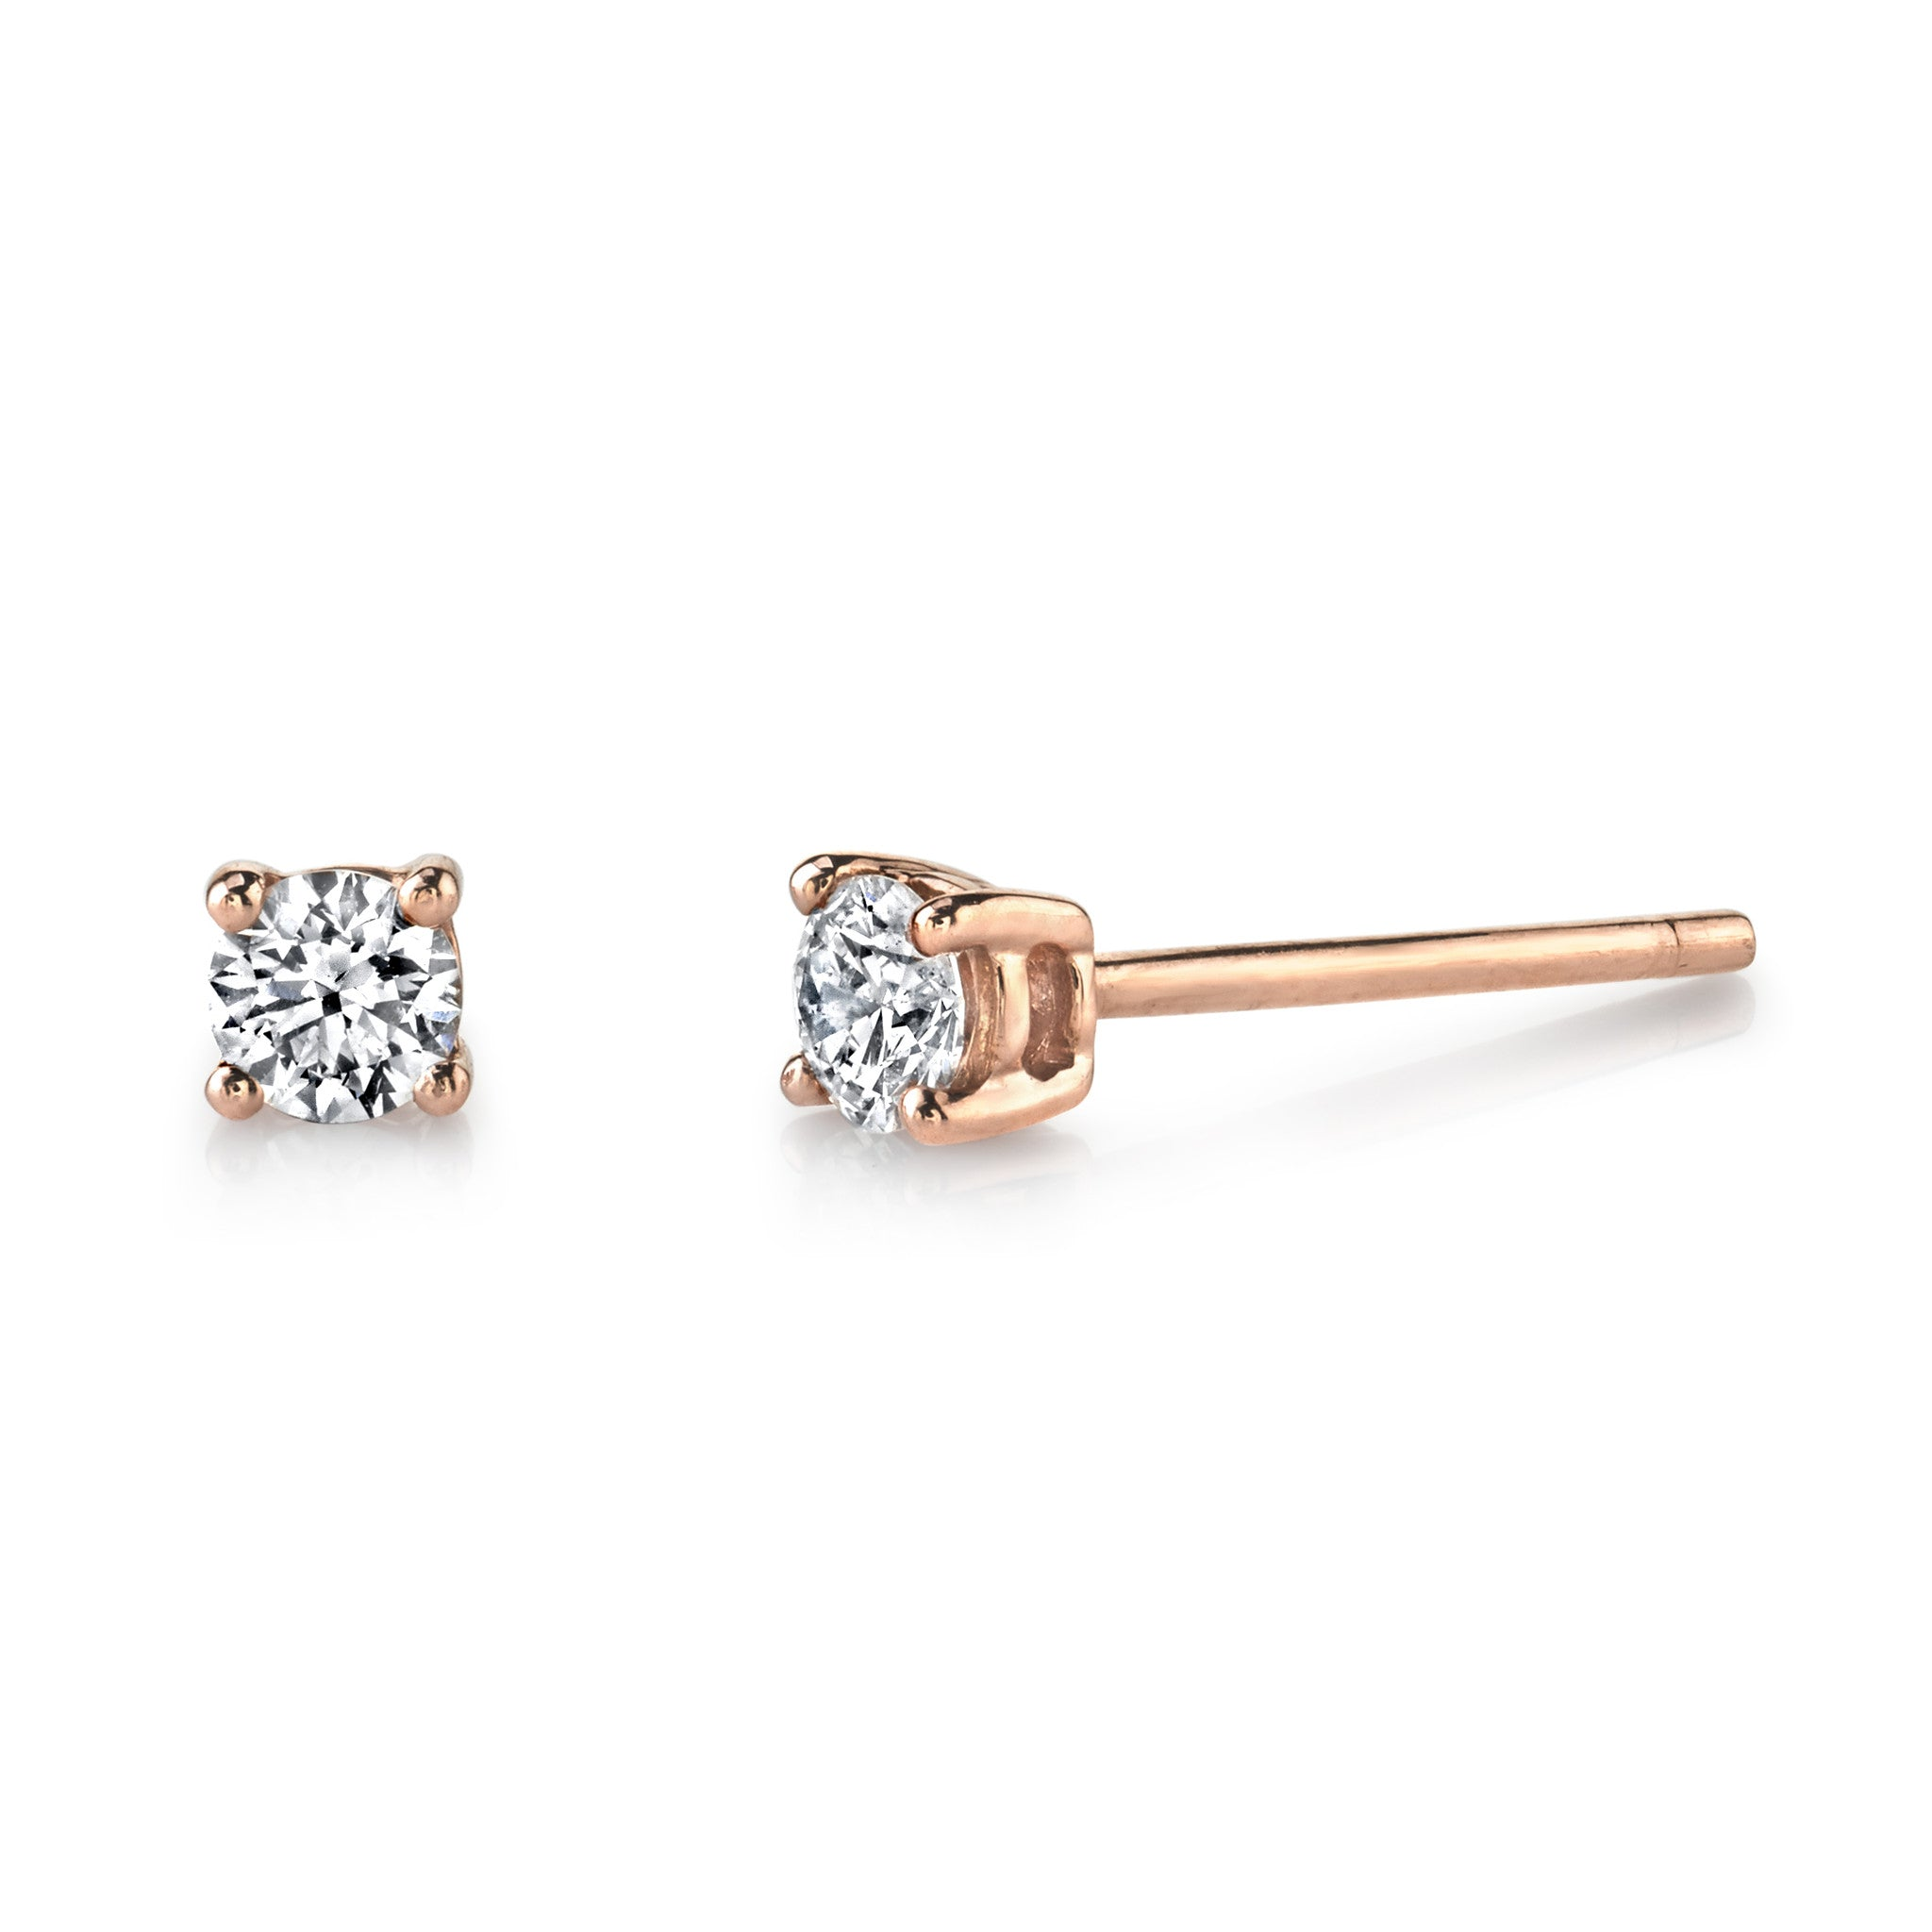 dia brown genuine solitaire diamond knot a ladies gold rg earrings round stud love itm